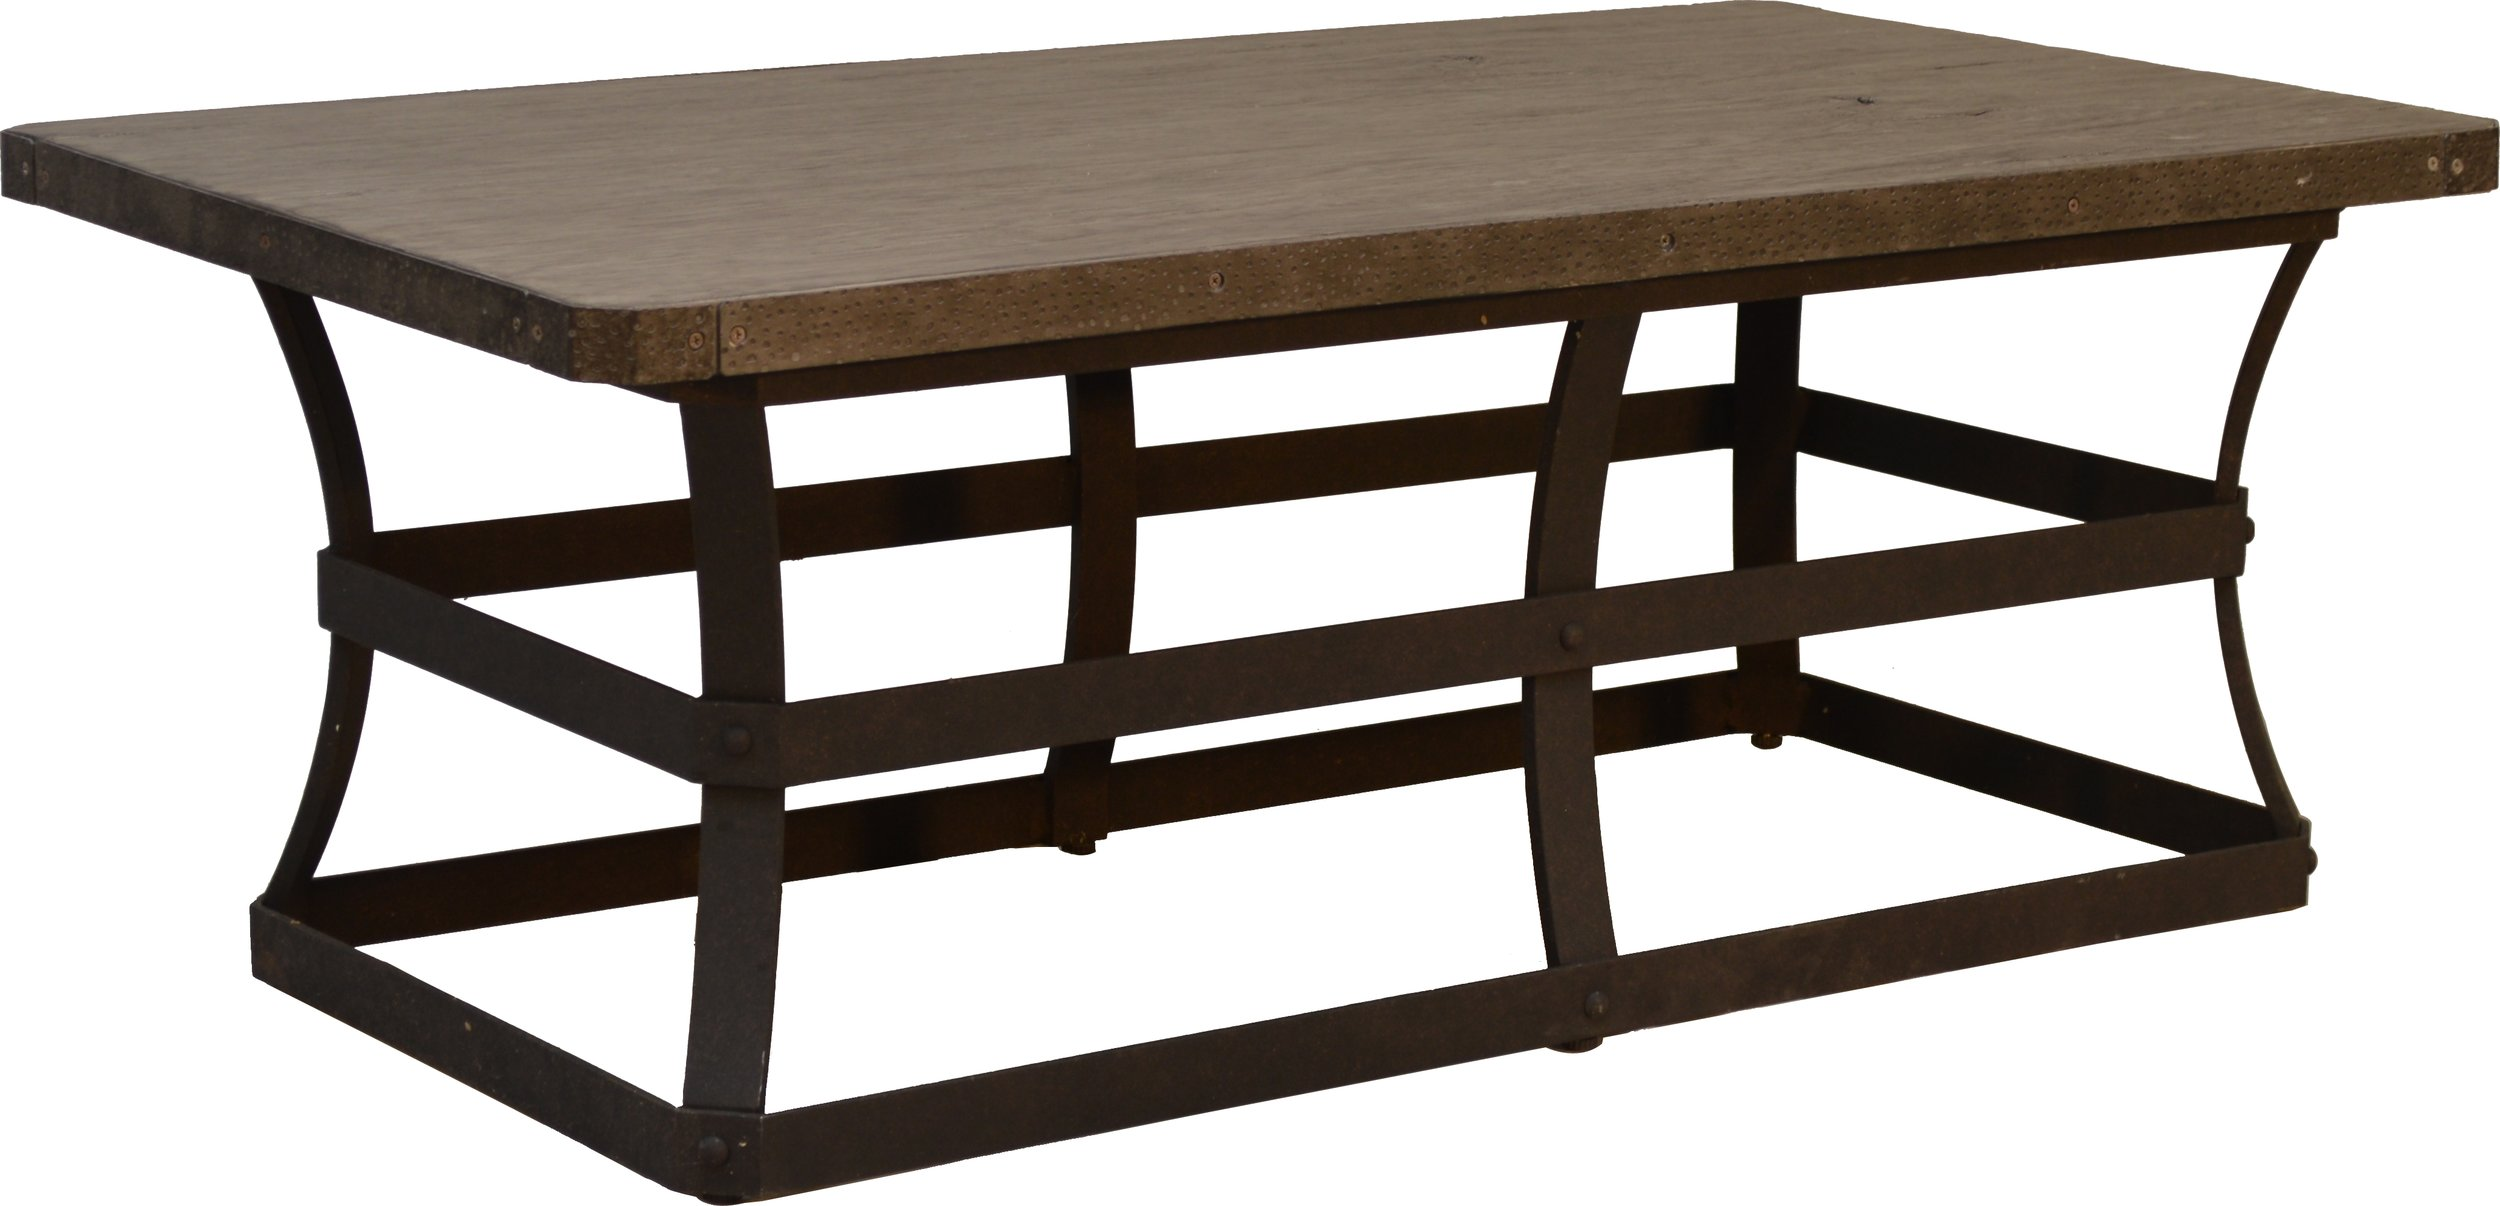 """PL-2648 26"""" x 48"""" Rect. Coffee Table base   20"""" x 42"""" x 17""""  Top - EA-35 Erie 26"""" x 48"""" Rect. Faux Wood Top Reclaimed Barnwood"""